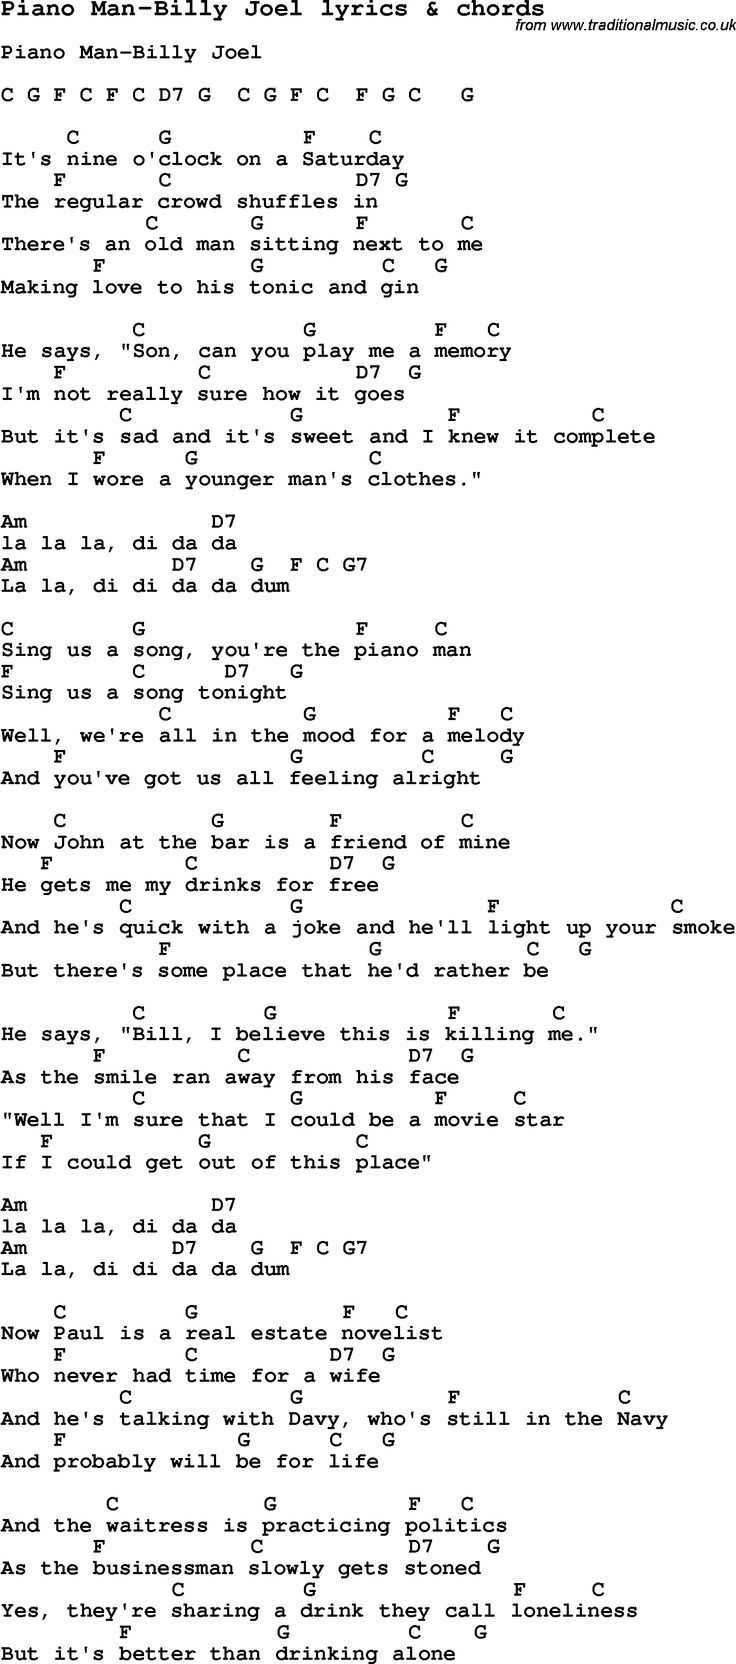 Chords and lyrics for guitar - Love Song Lyrics For Piano Man Billy Joel With Chords For Ukulele Guitar